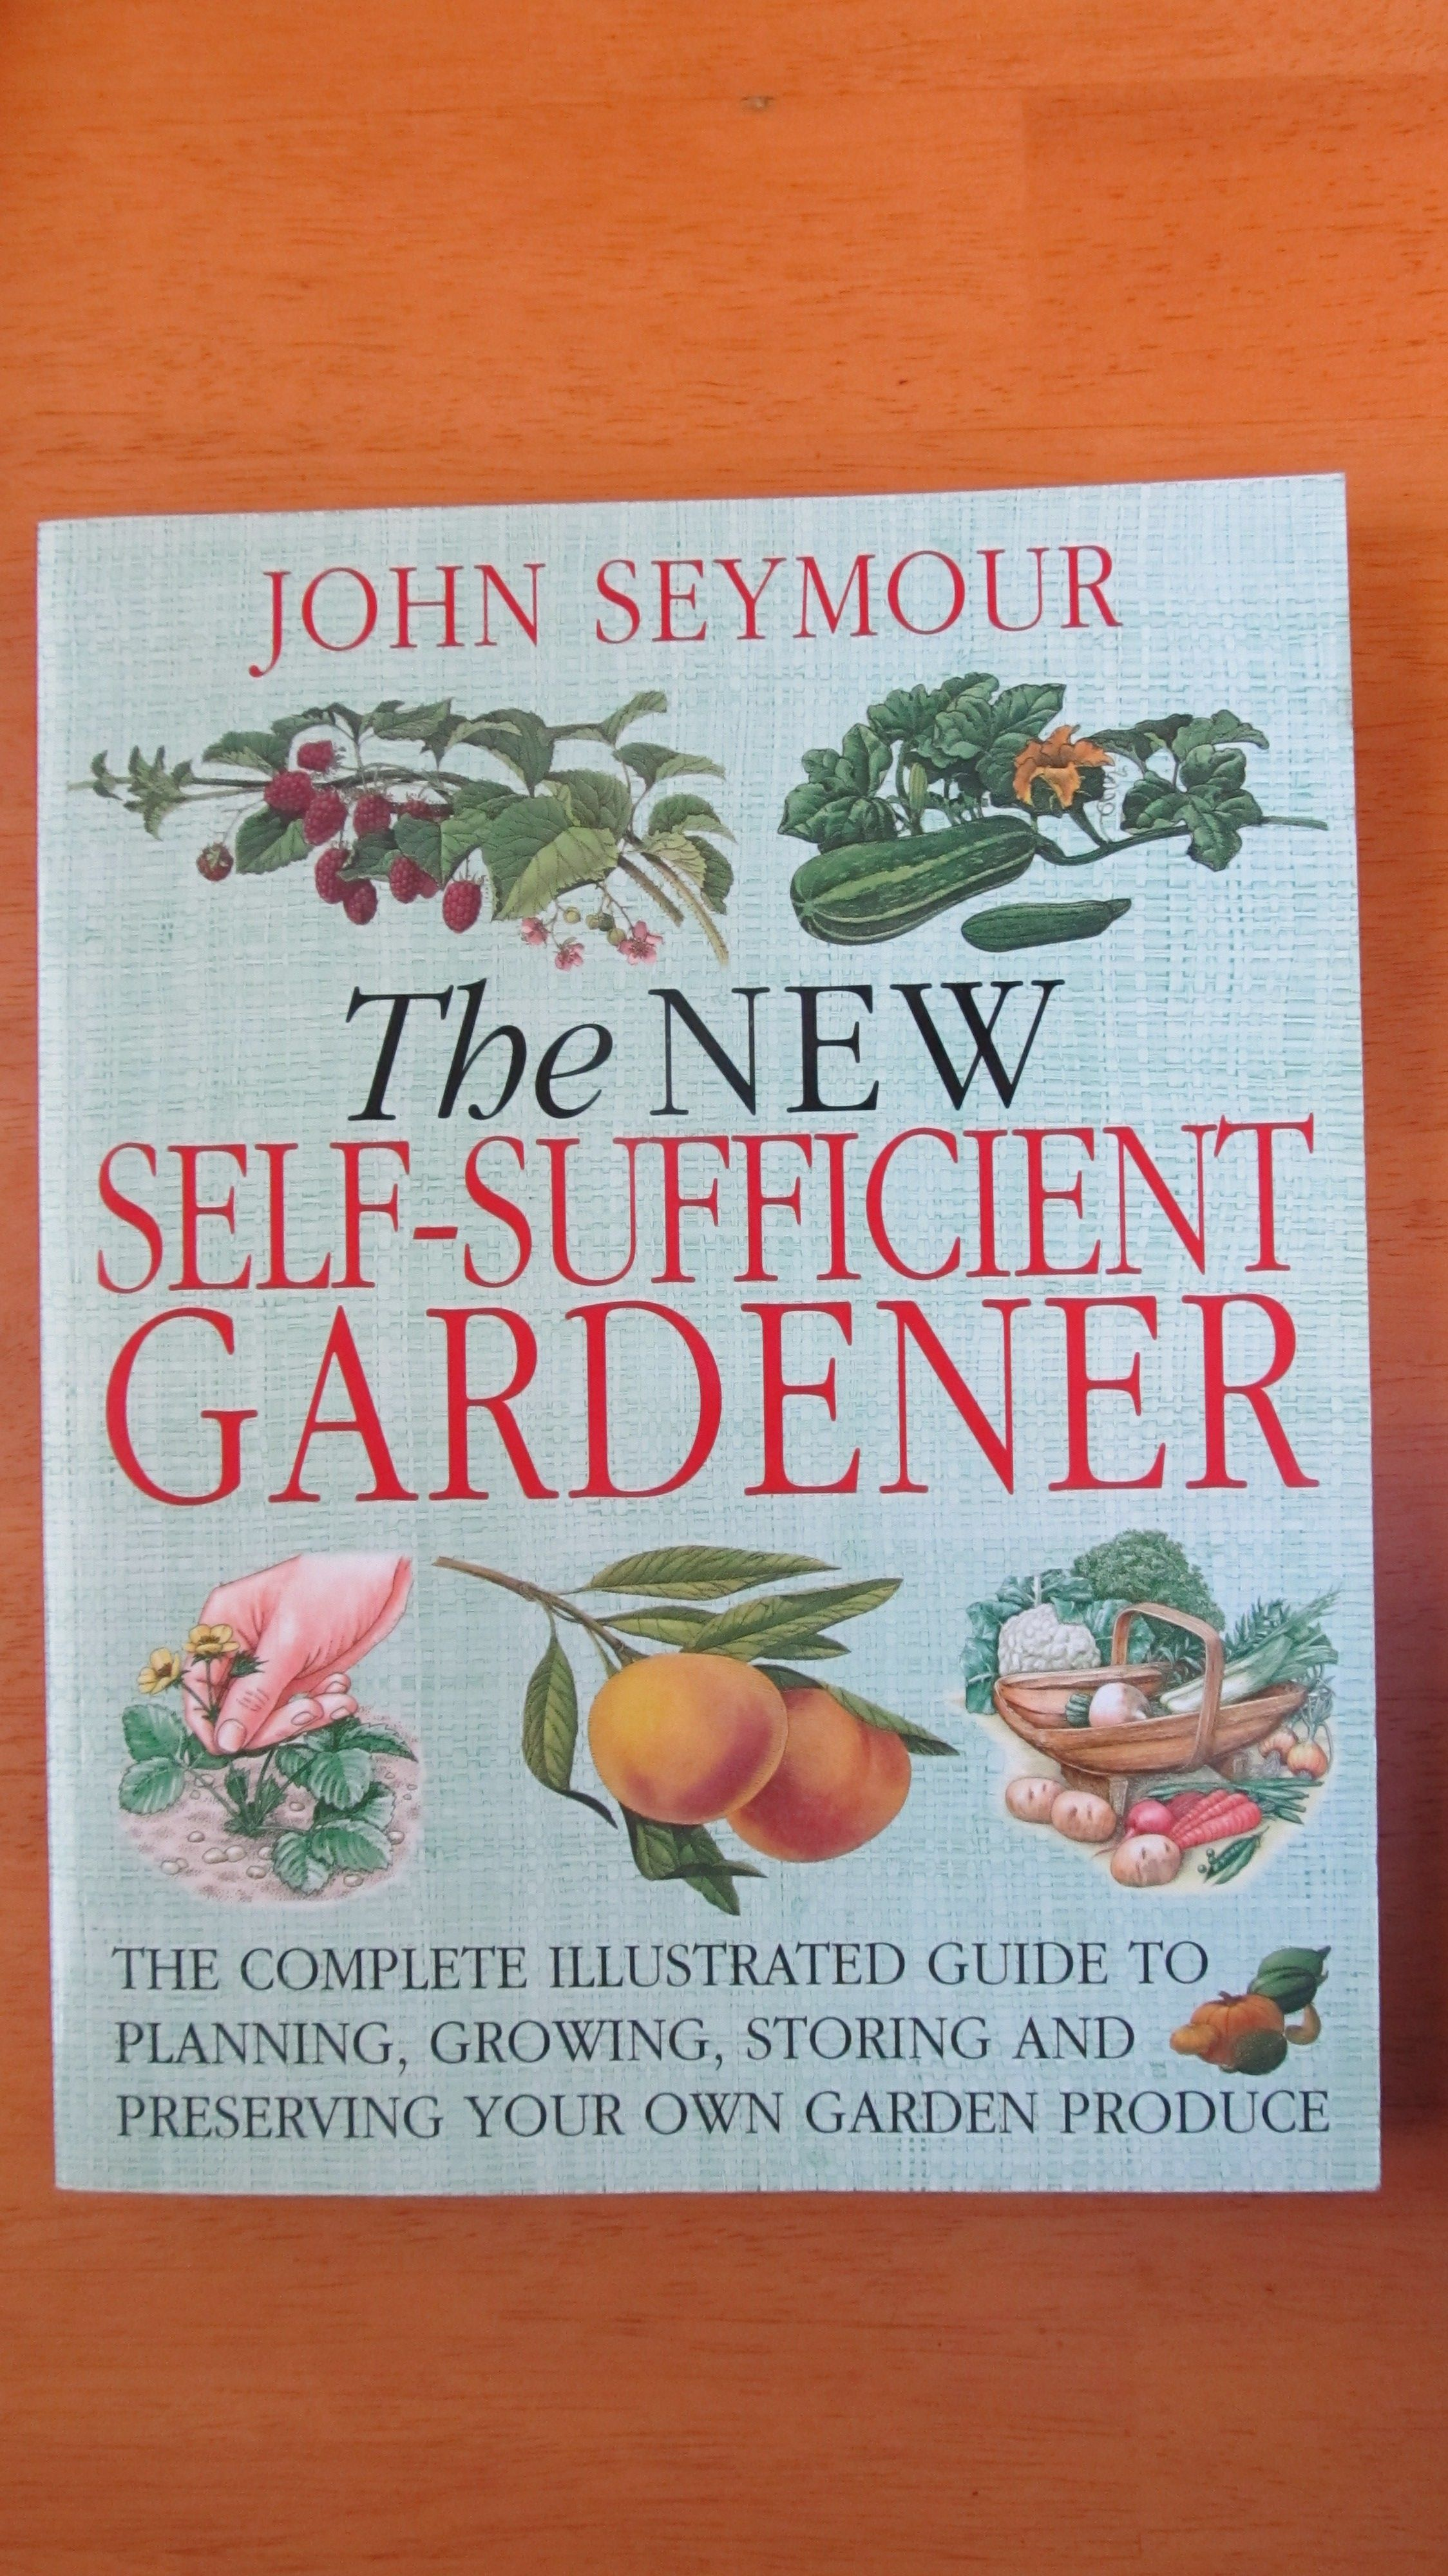 0af1ce75aca51cbbe462211ffa5d9621 - The New Self Sufficient Gardener John Seymour